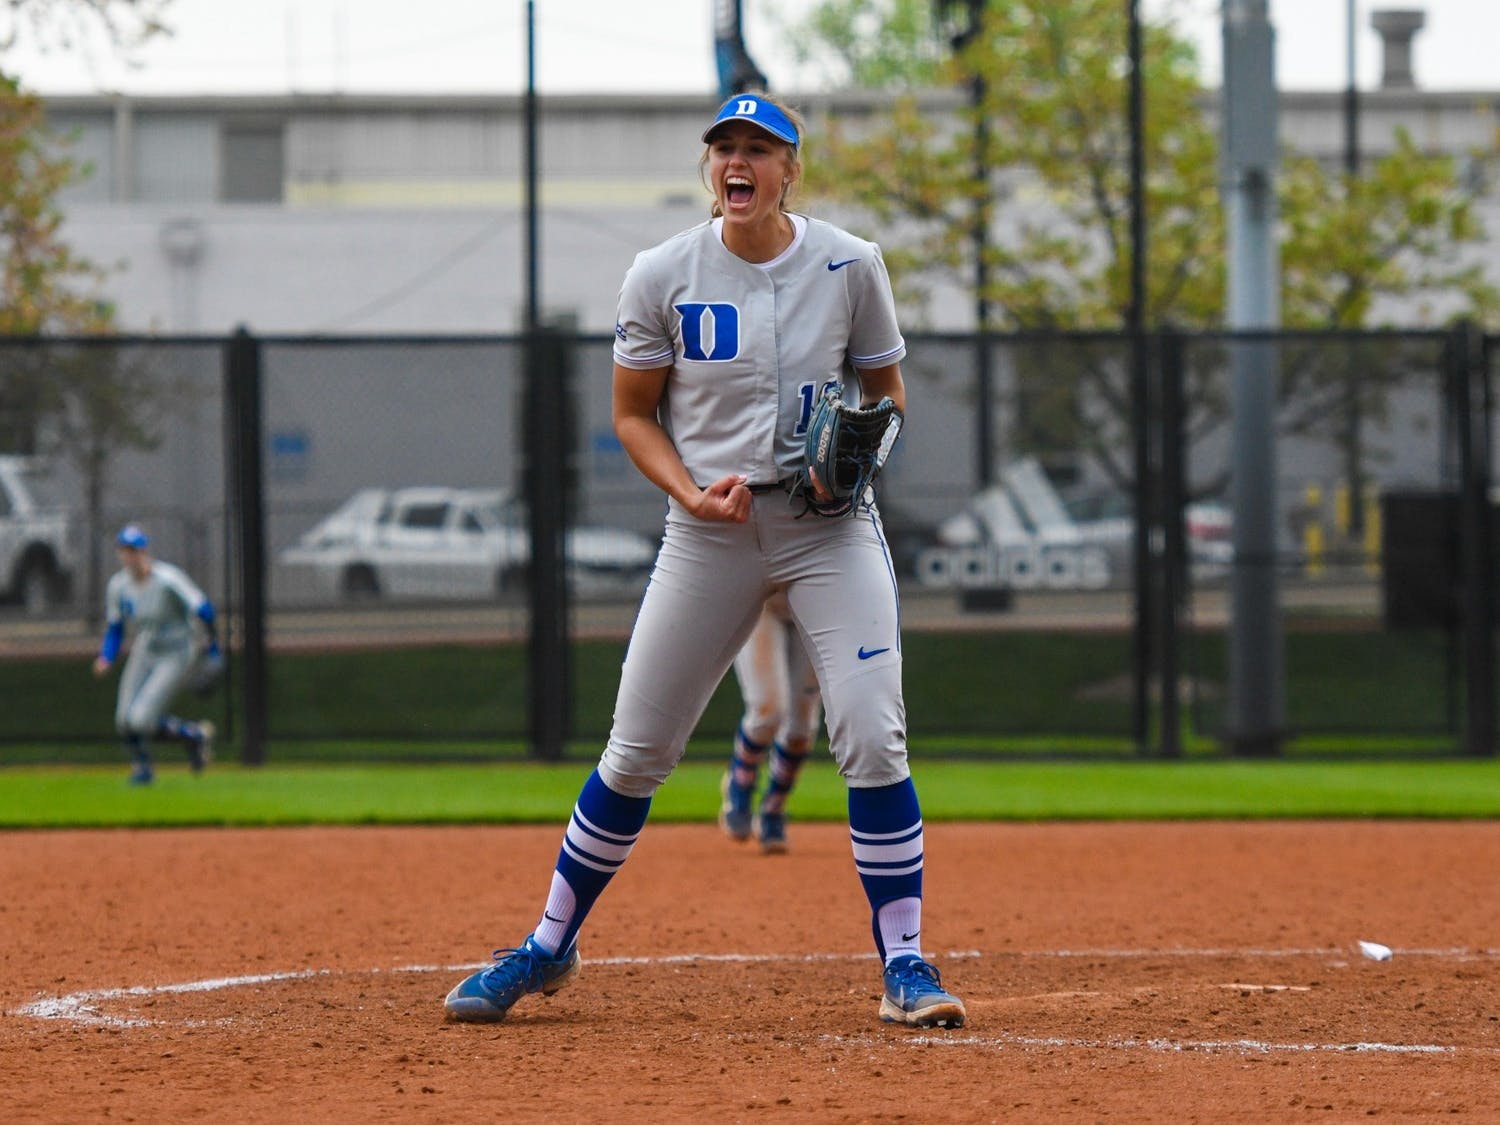 Peyton St. George and the Blue Devils won their first series since their March 19-21 series against Syracuse.